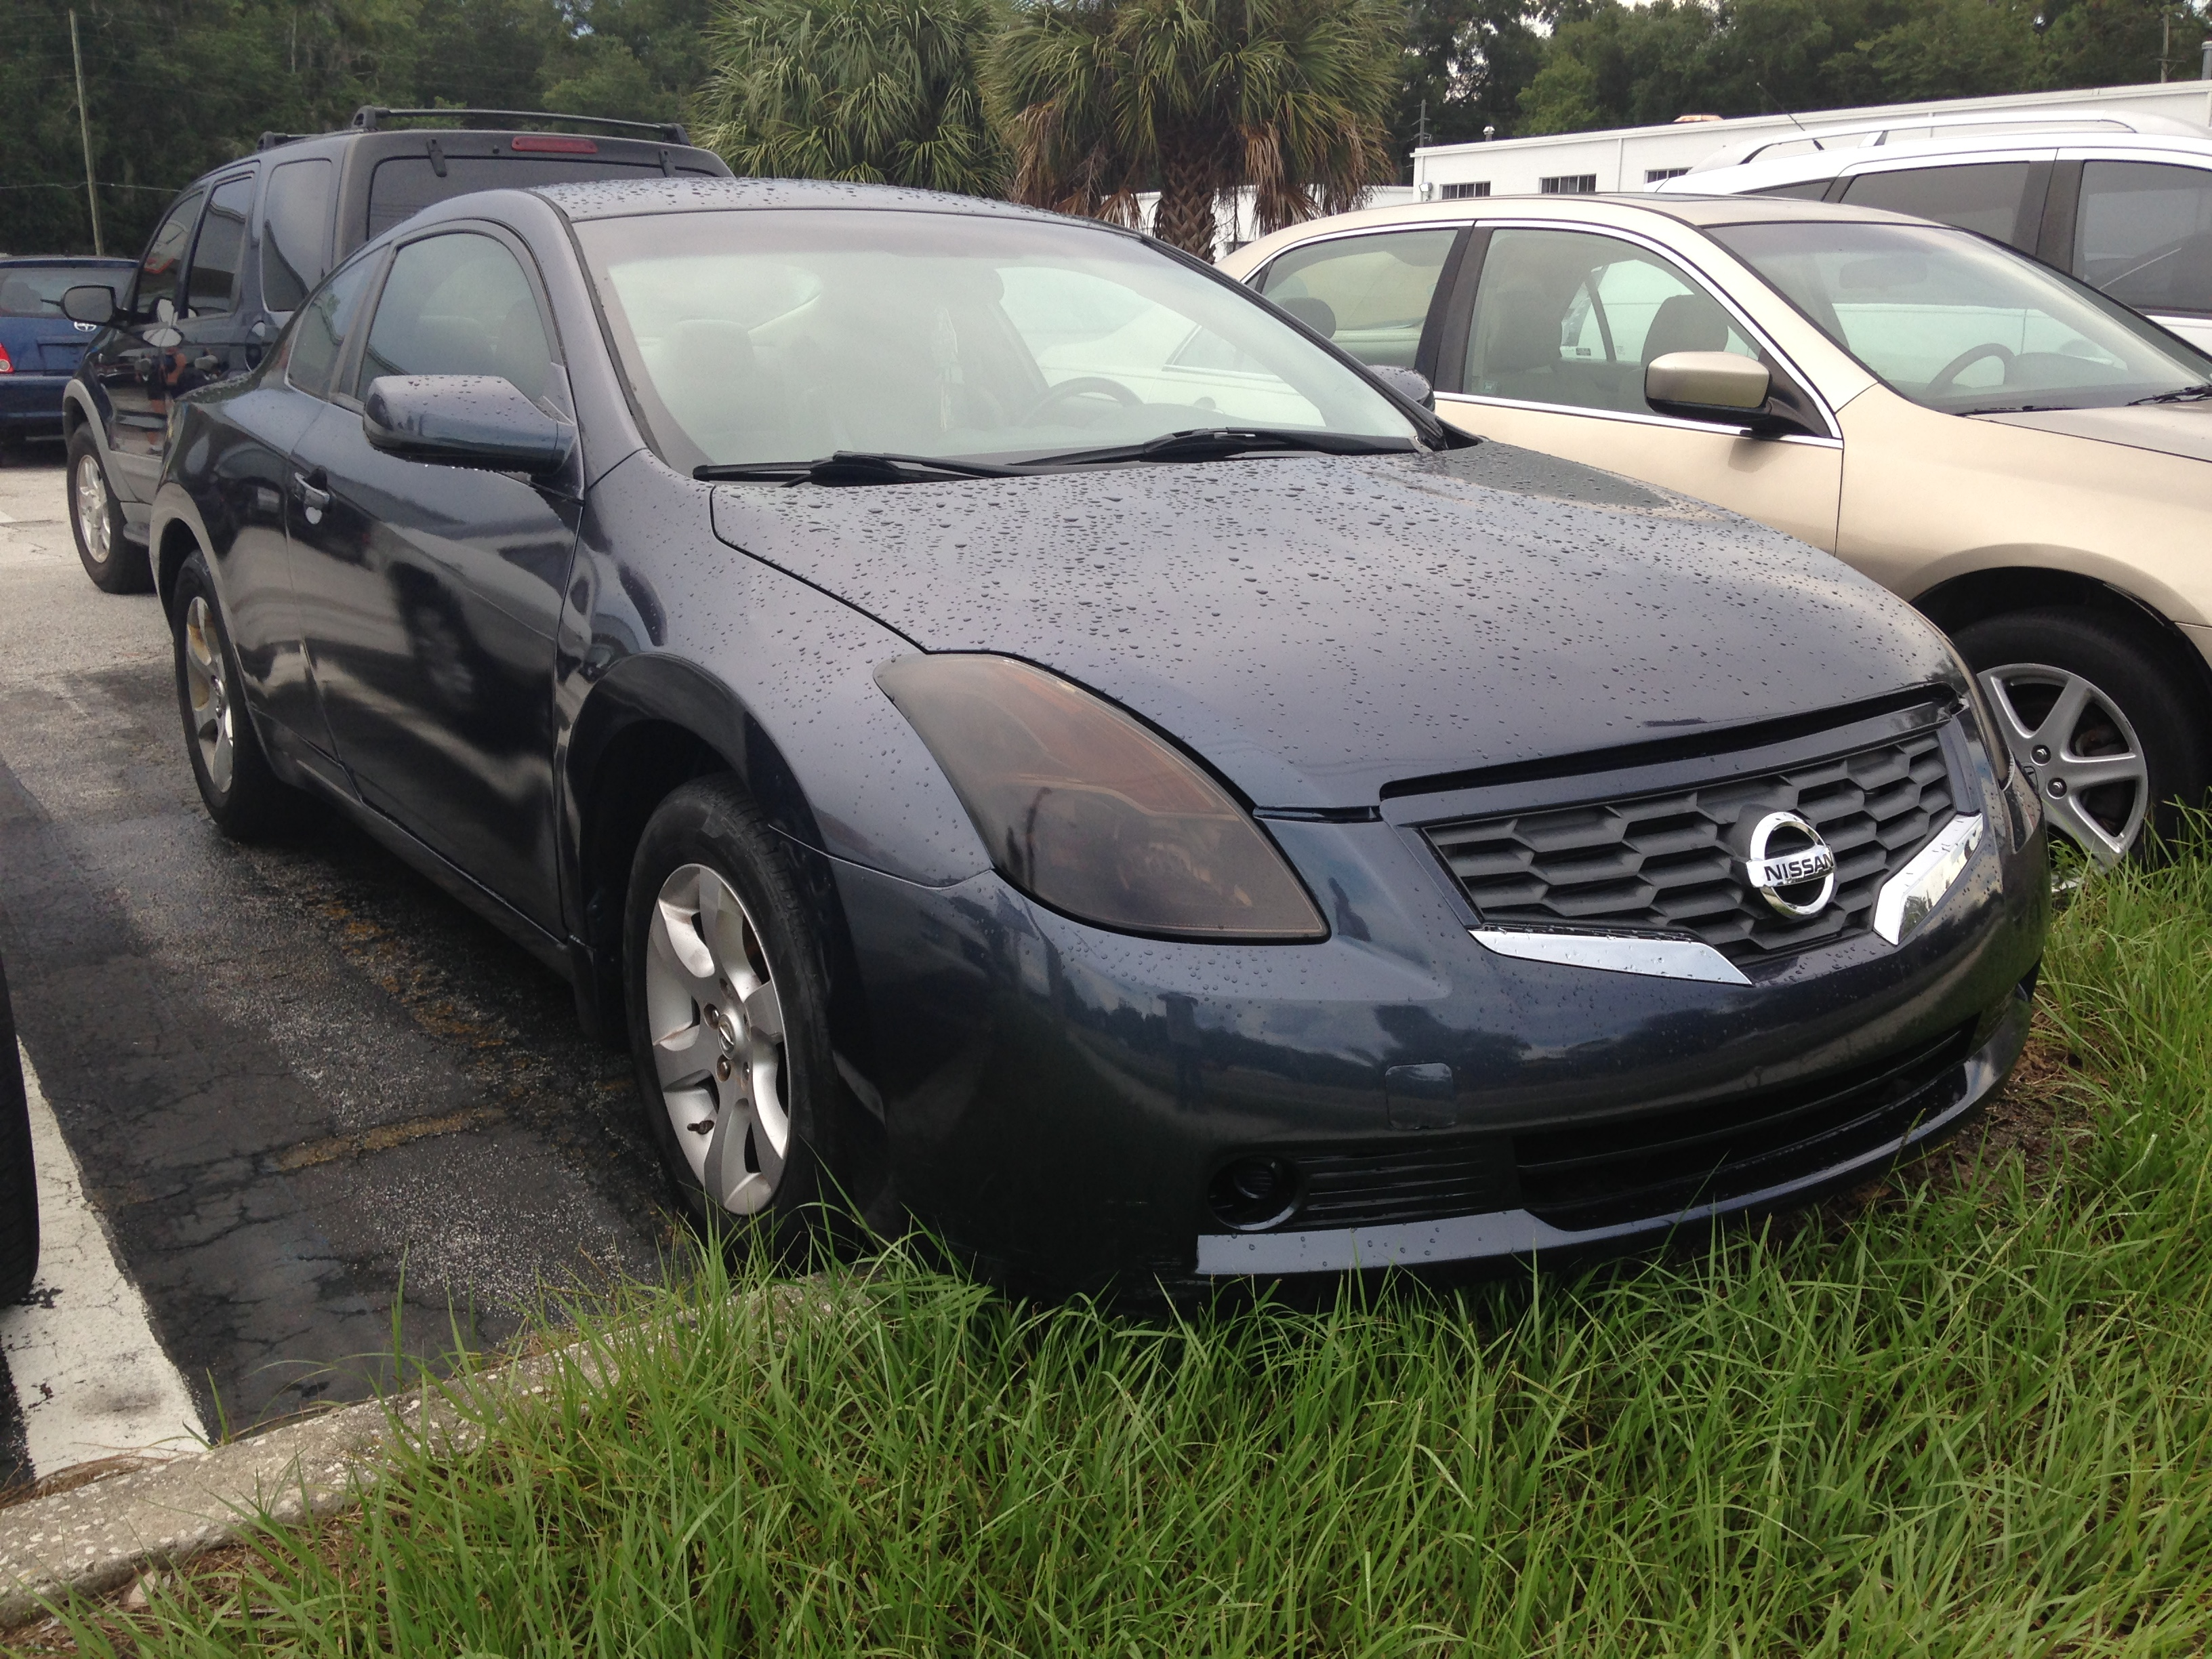 Nissan Altima 2.5 S Coupe 2008 # 288129